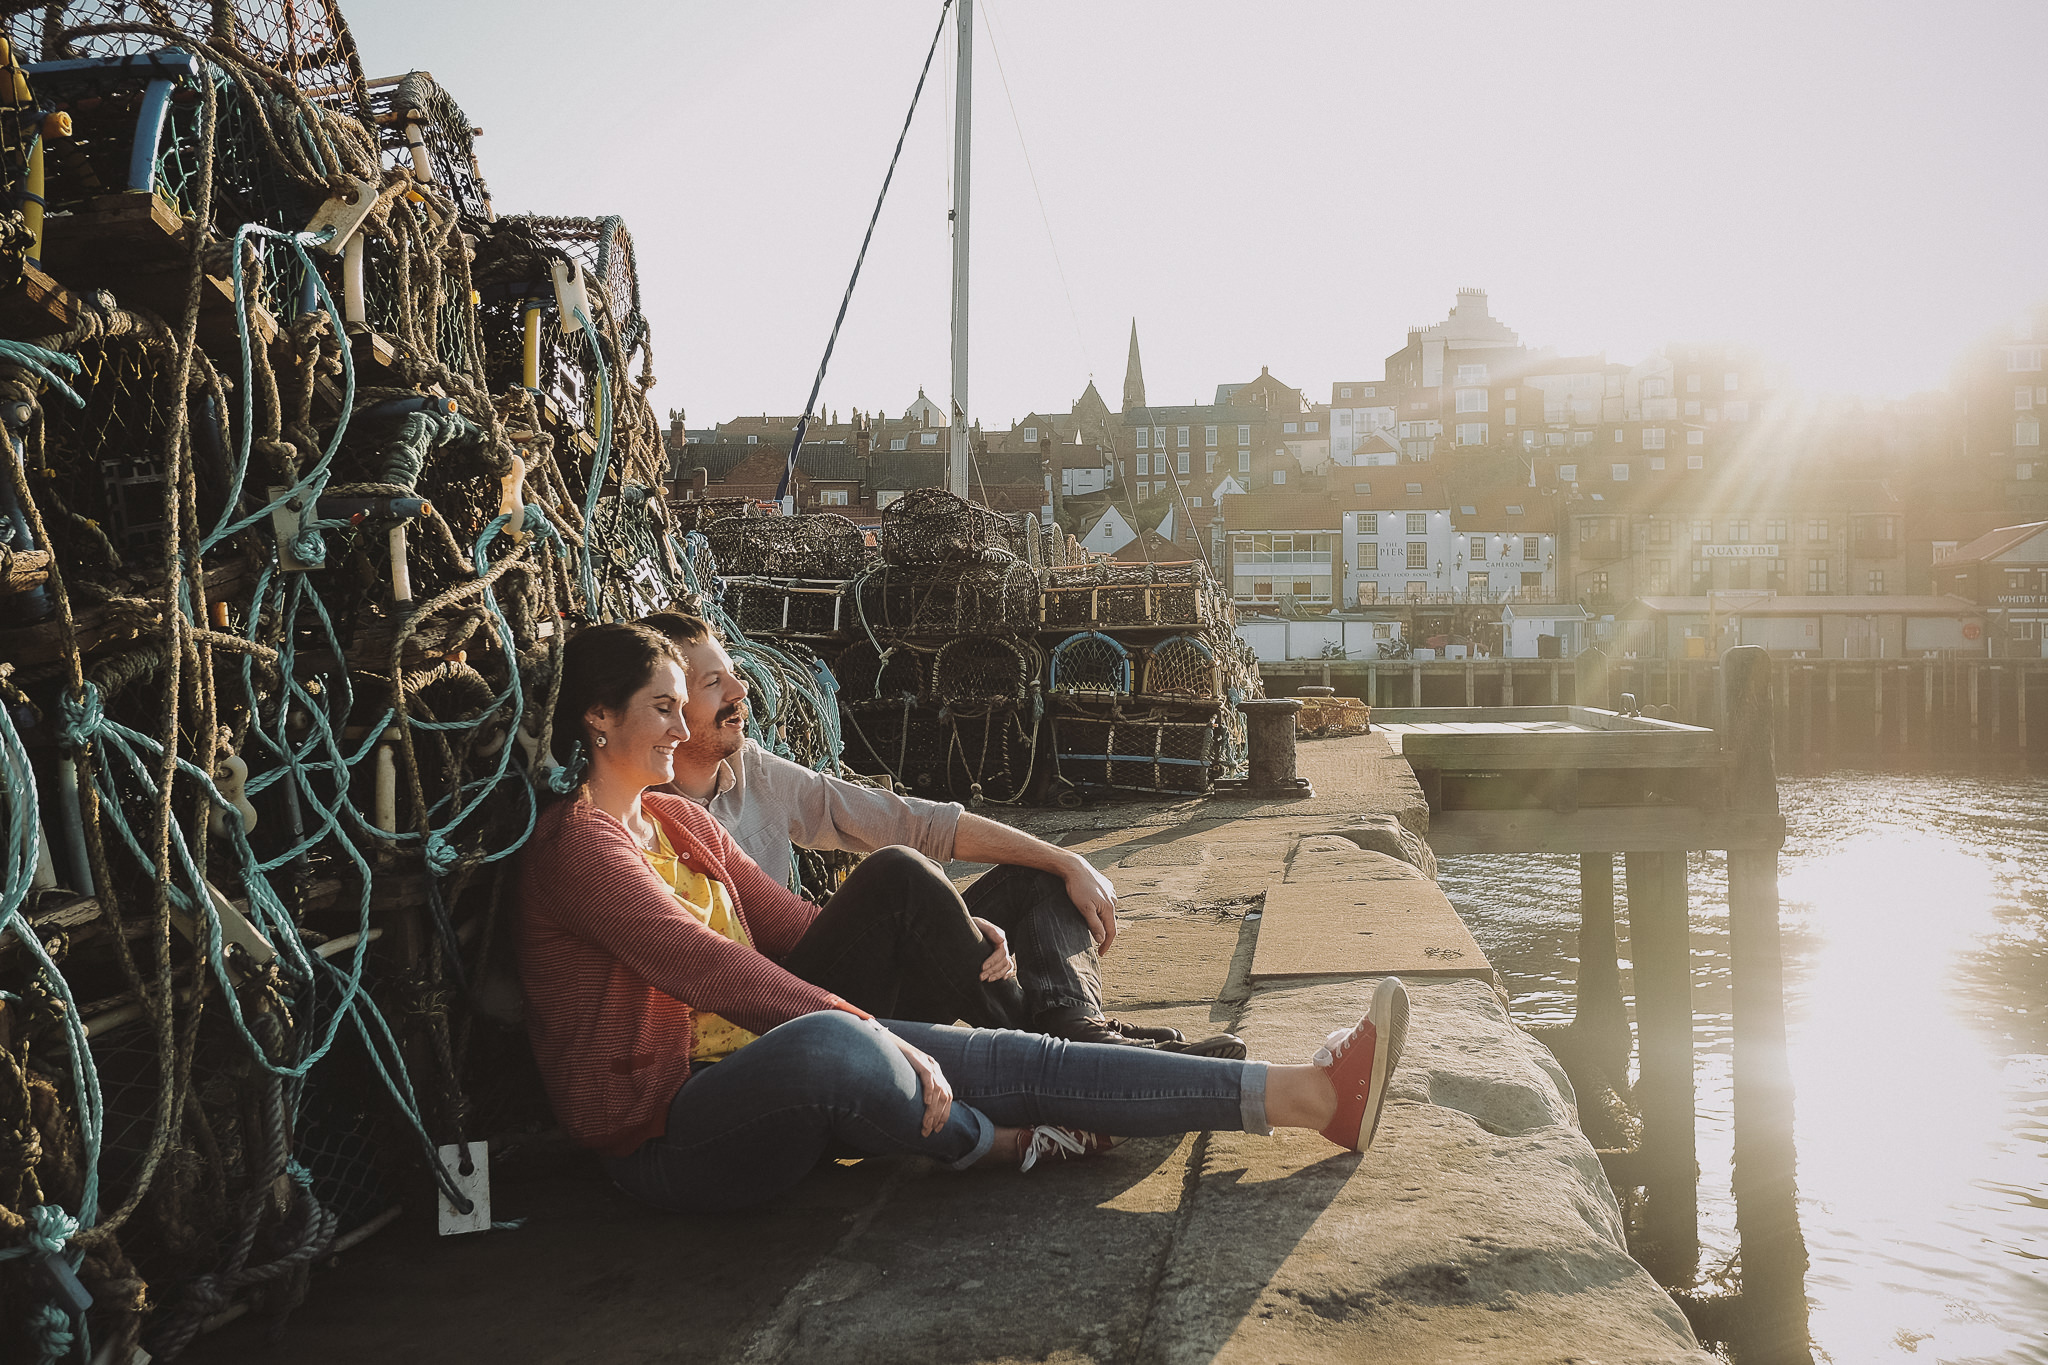 Engaged couple sit on the dock in bright sunshine in Whitby